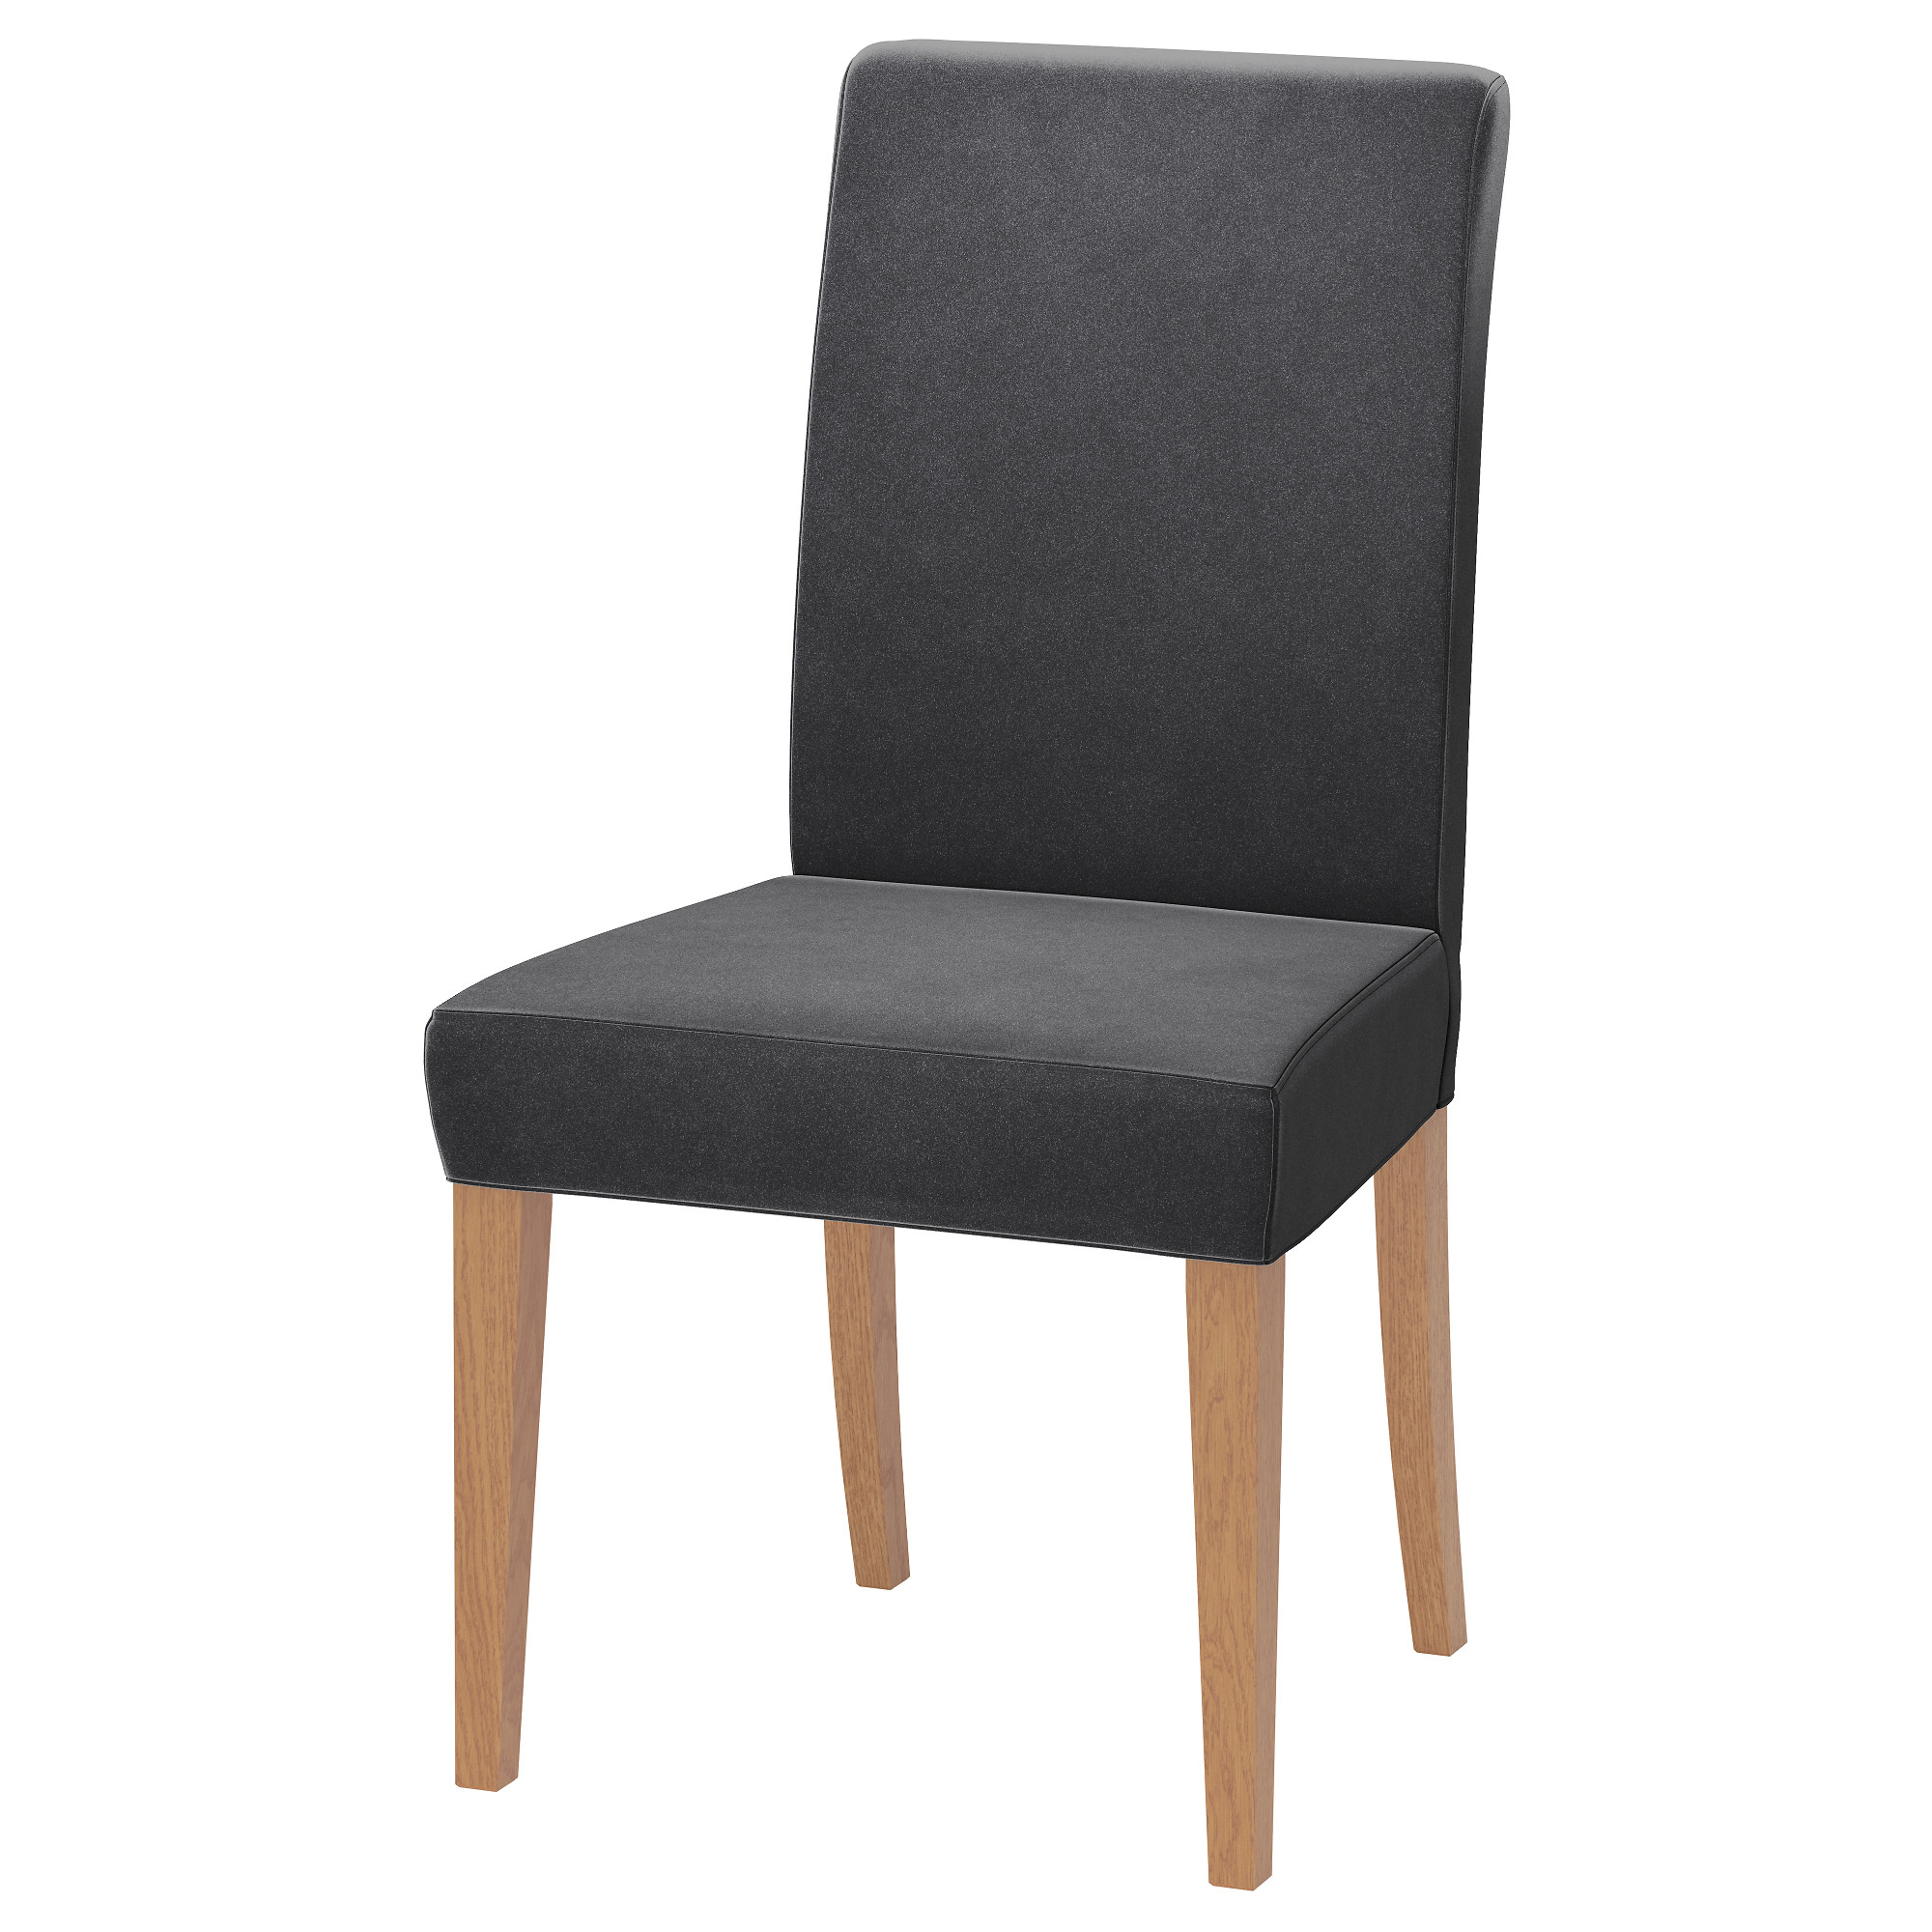 Dining chairs - Dining chairs \u0026 Upholstered chairs - IKEA